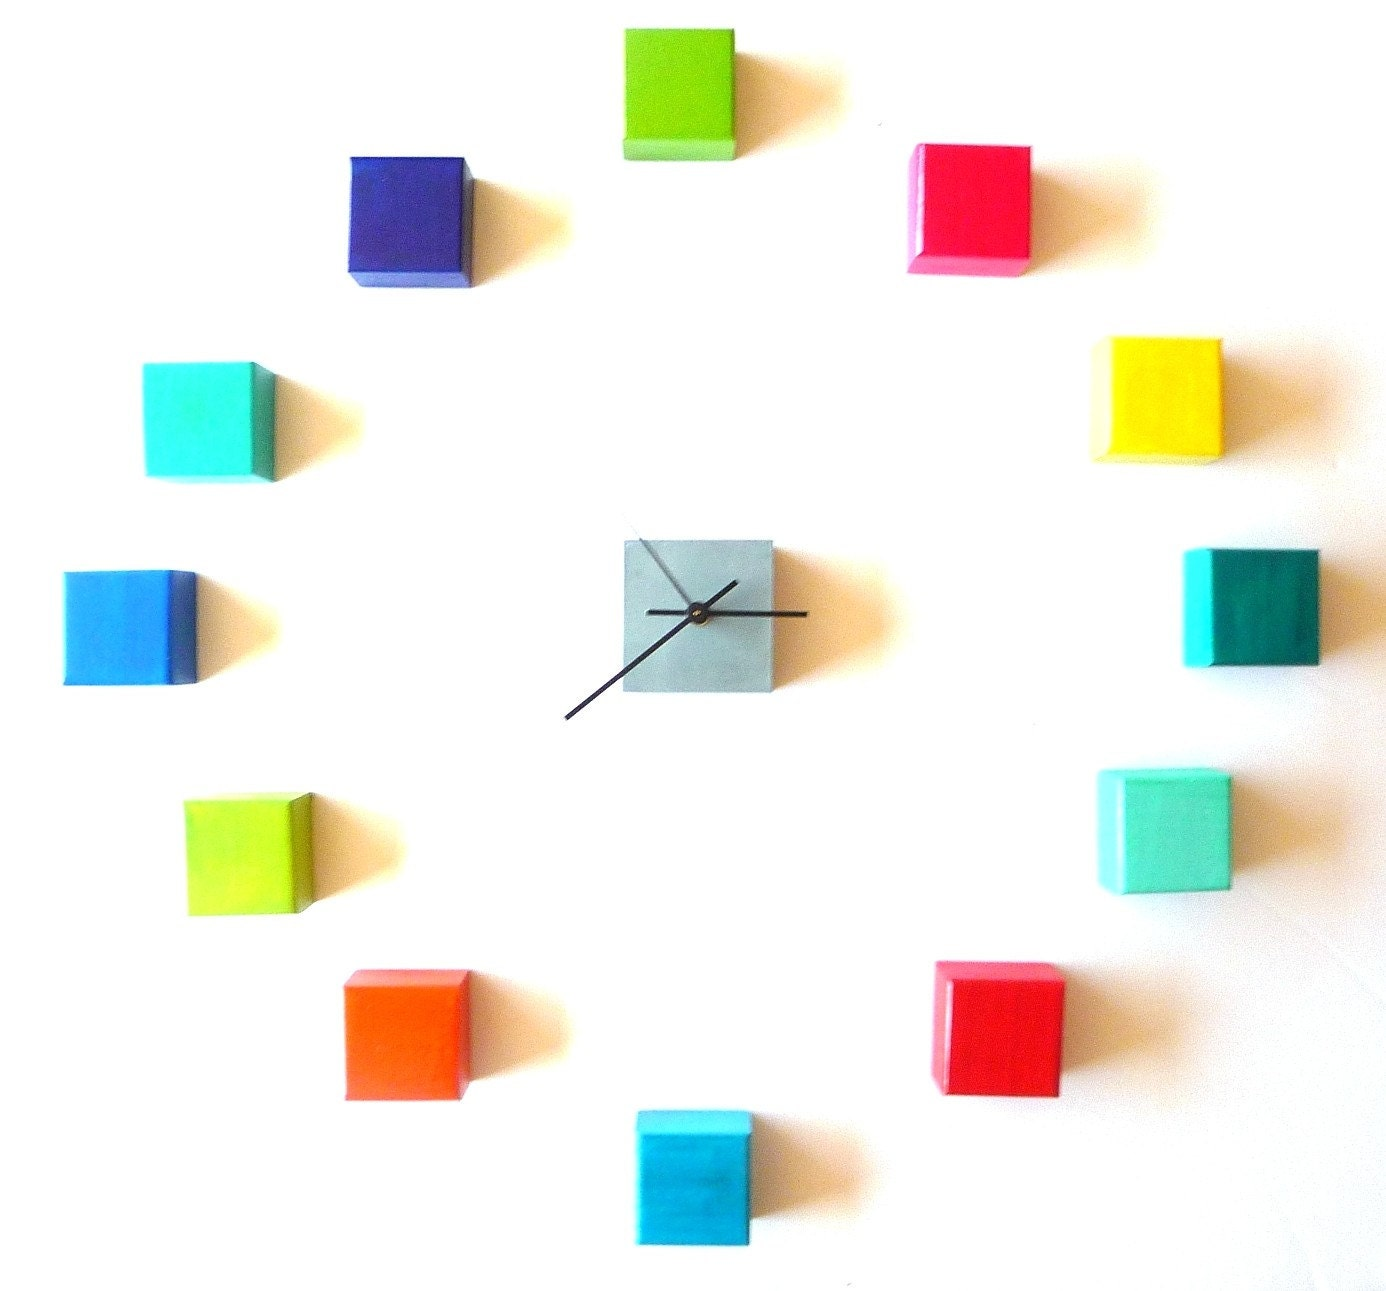 trendy modern wall clock clock cubes no cube clock by oneofatime with wall clocks modern